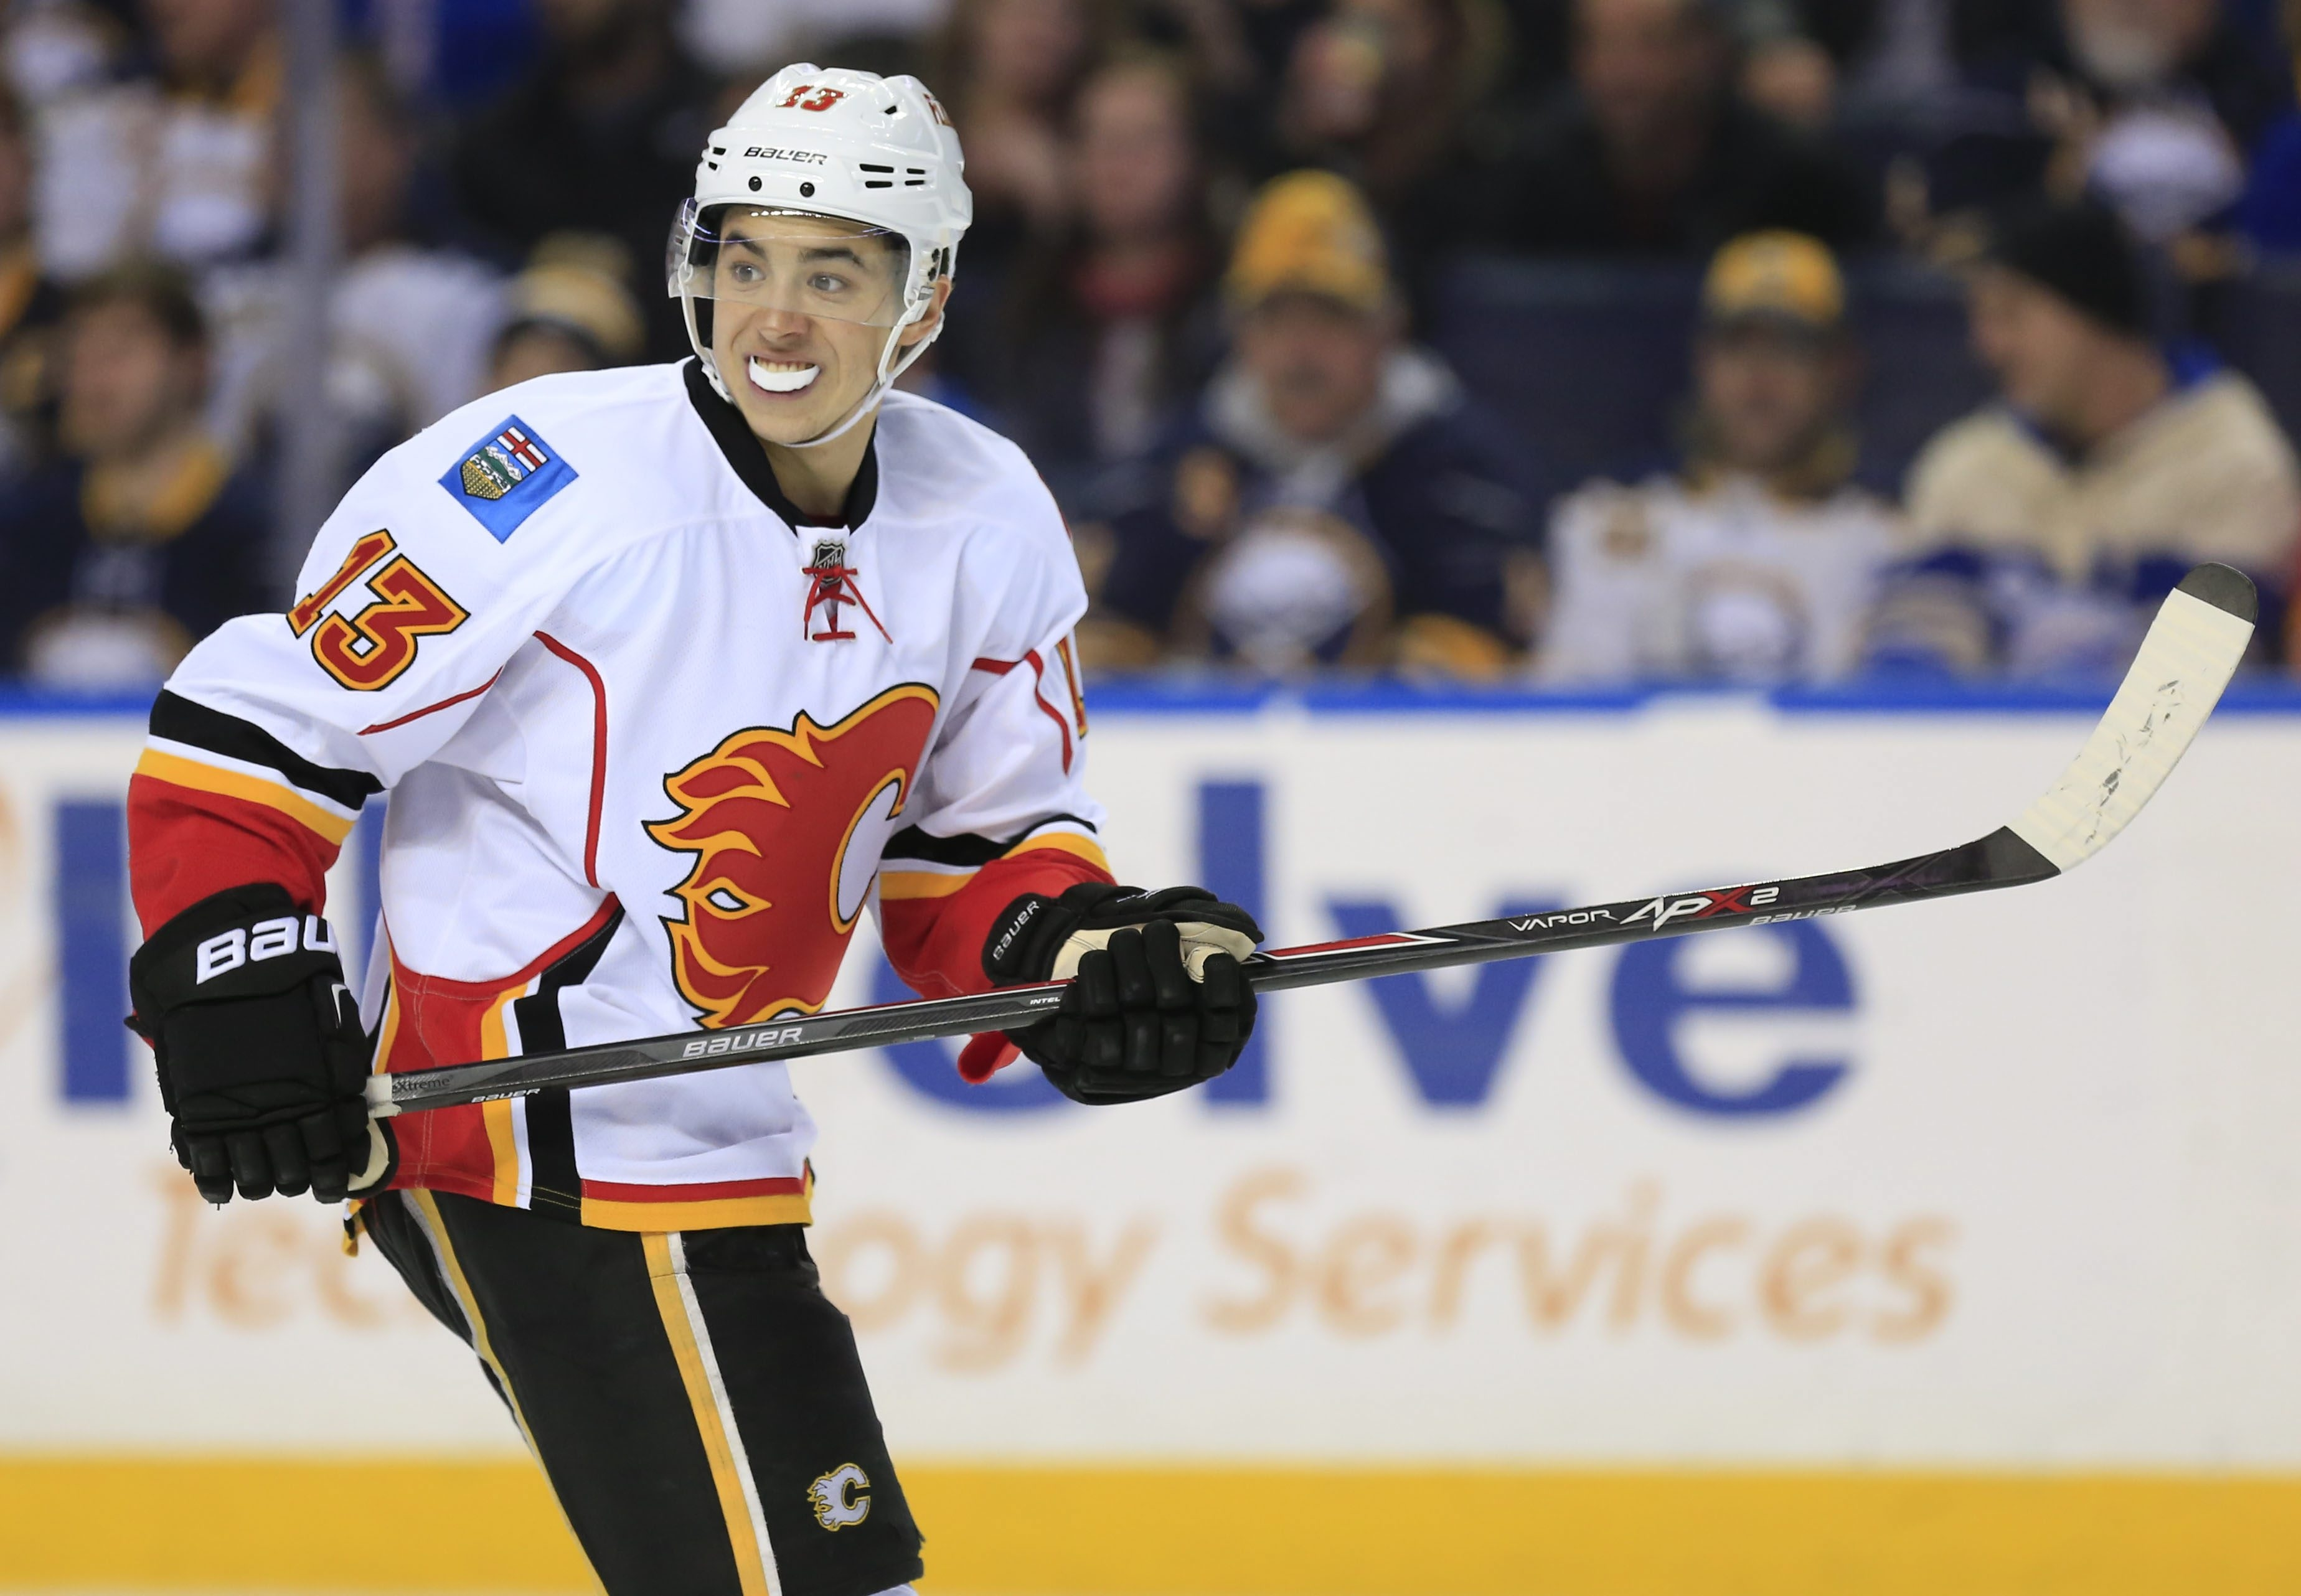 Calgary Flames left winger Johnny Gaudreau skates against the Buffalo Sabres during third-period action at First Niagara Center on Thursday.